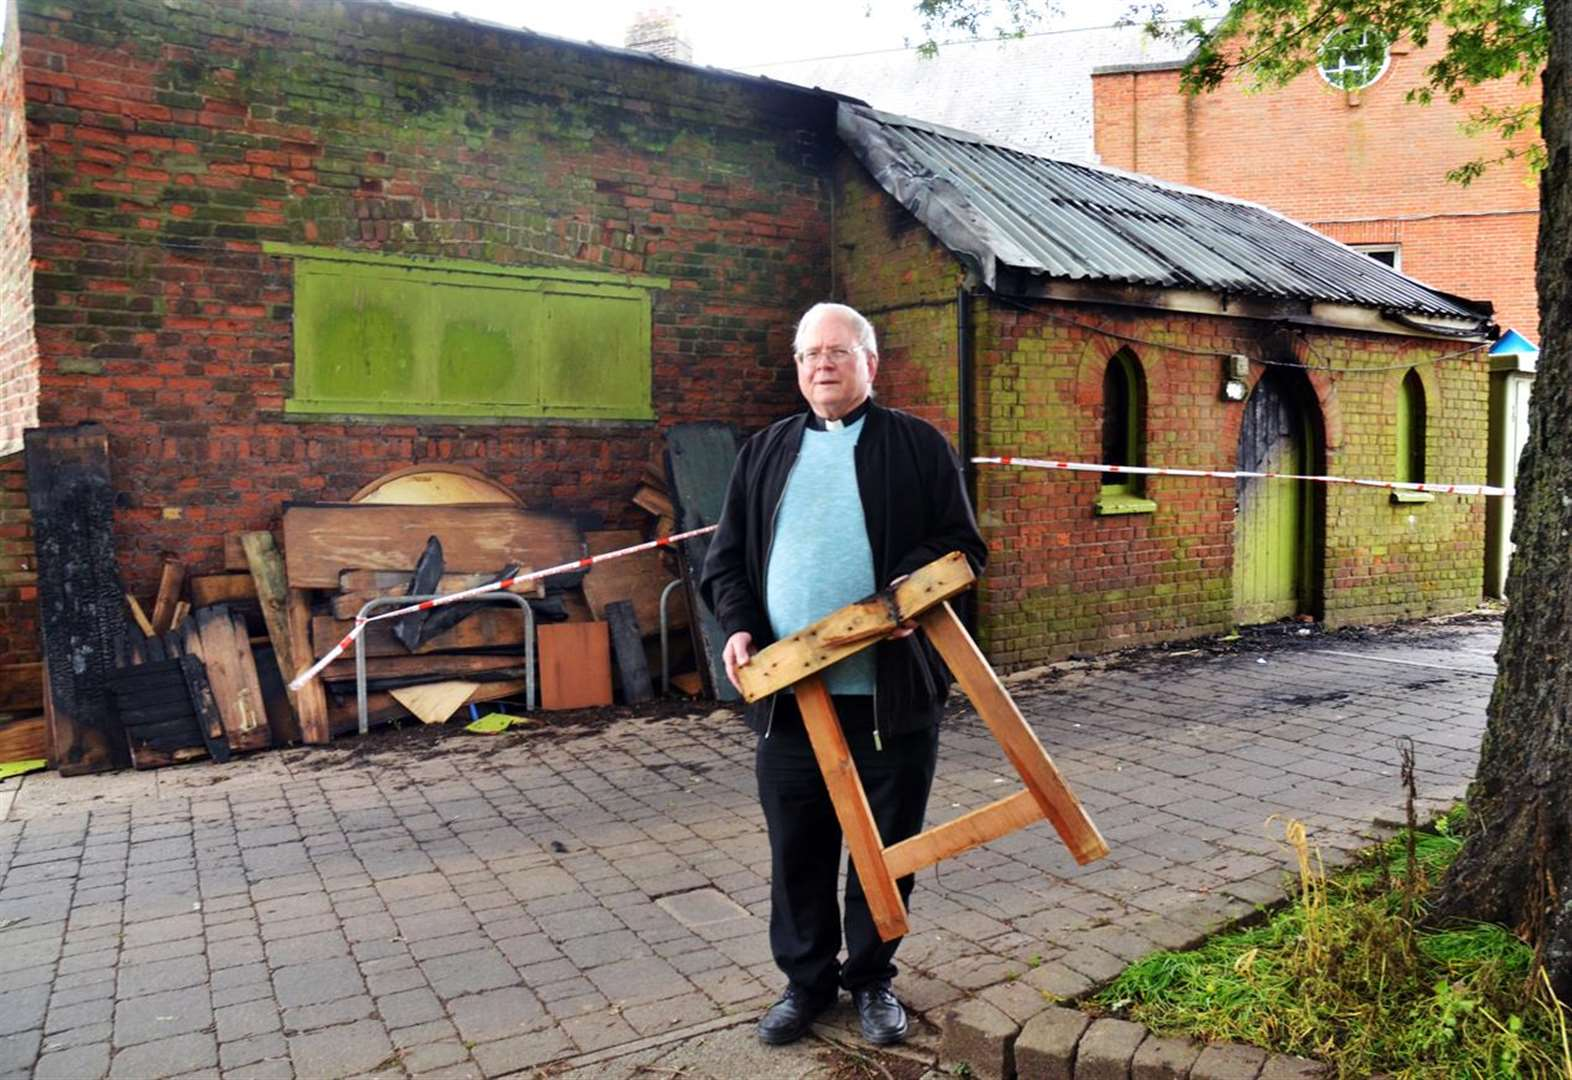 Long Sutton Church is reeling from arson attack